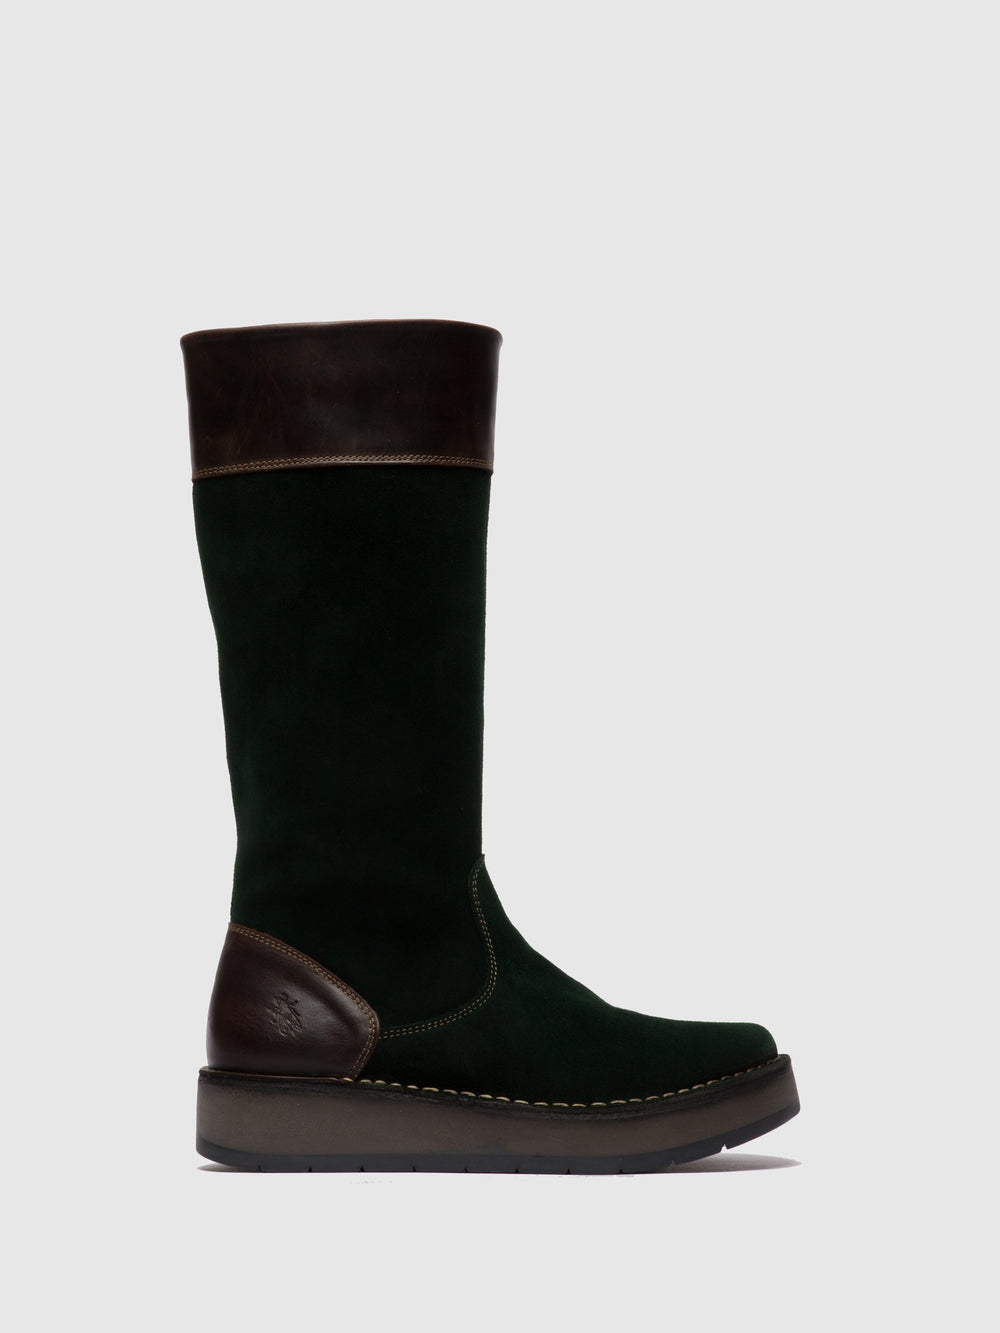 Zip Up Boots RIPA056FLY OILSUEDE/RUG GREEN FOREST/DK.BROWN